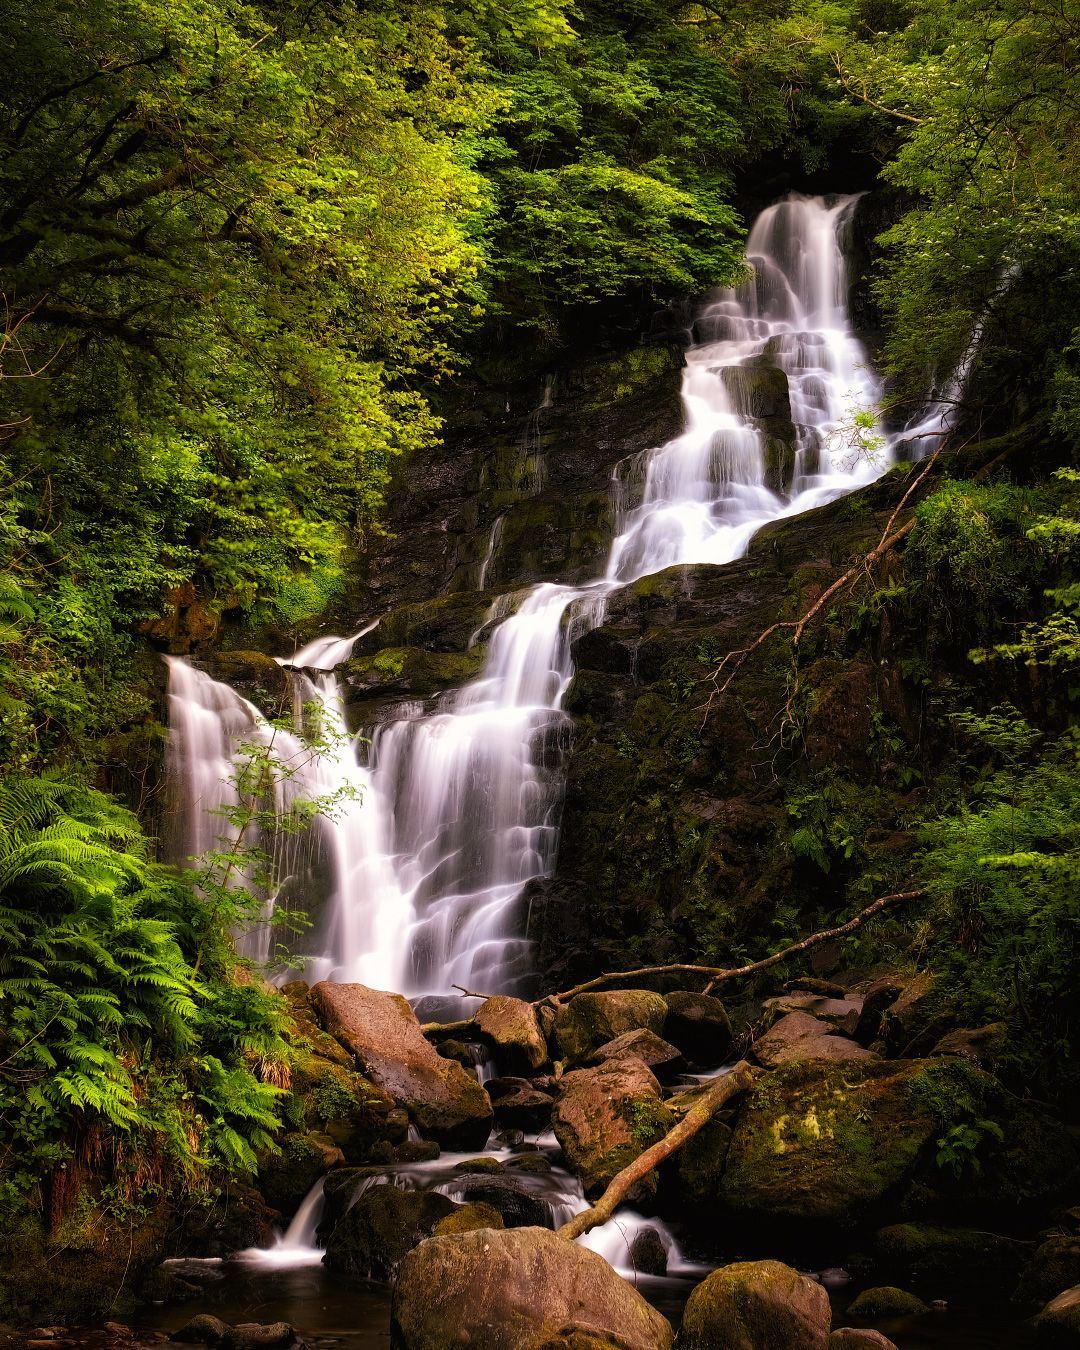 ...among the greens... ireland nature outdoors landscape long exposure water watrefall falling flow stream creek river rocks greens wood forest stones deep fairy tail mysterious scenic scenery picturesque awe wonderful breathtaking europe